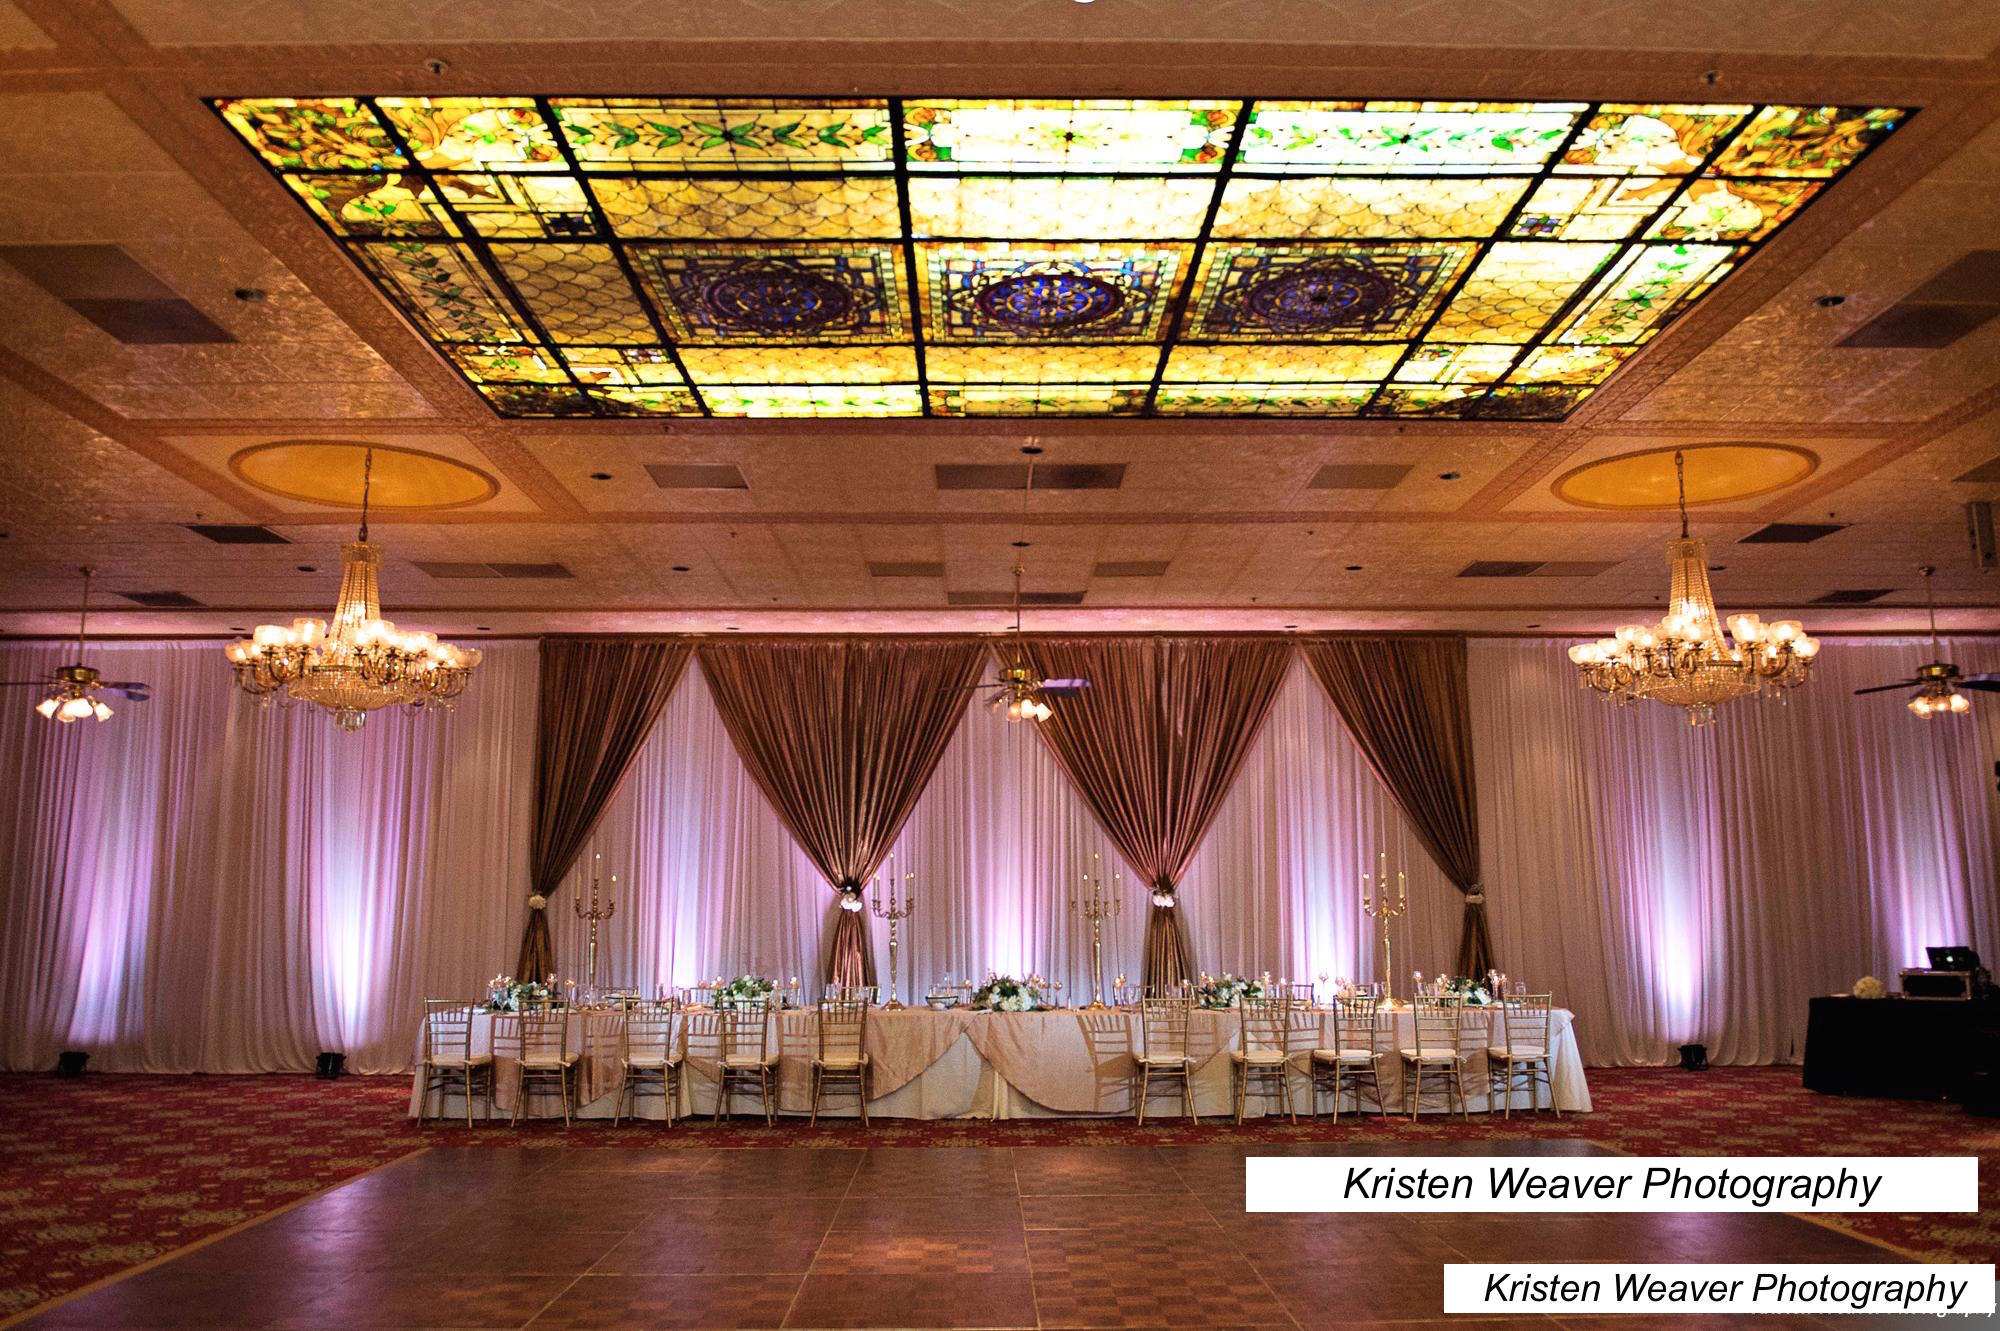 purple uplighting in reception hall with stained glass ceiling